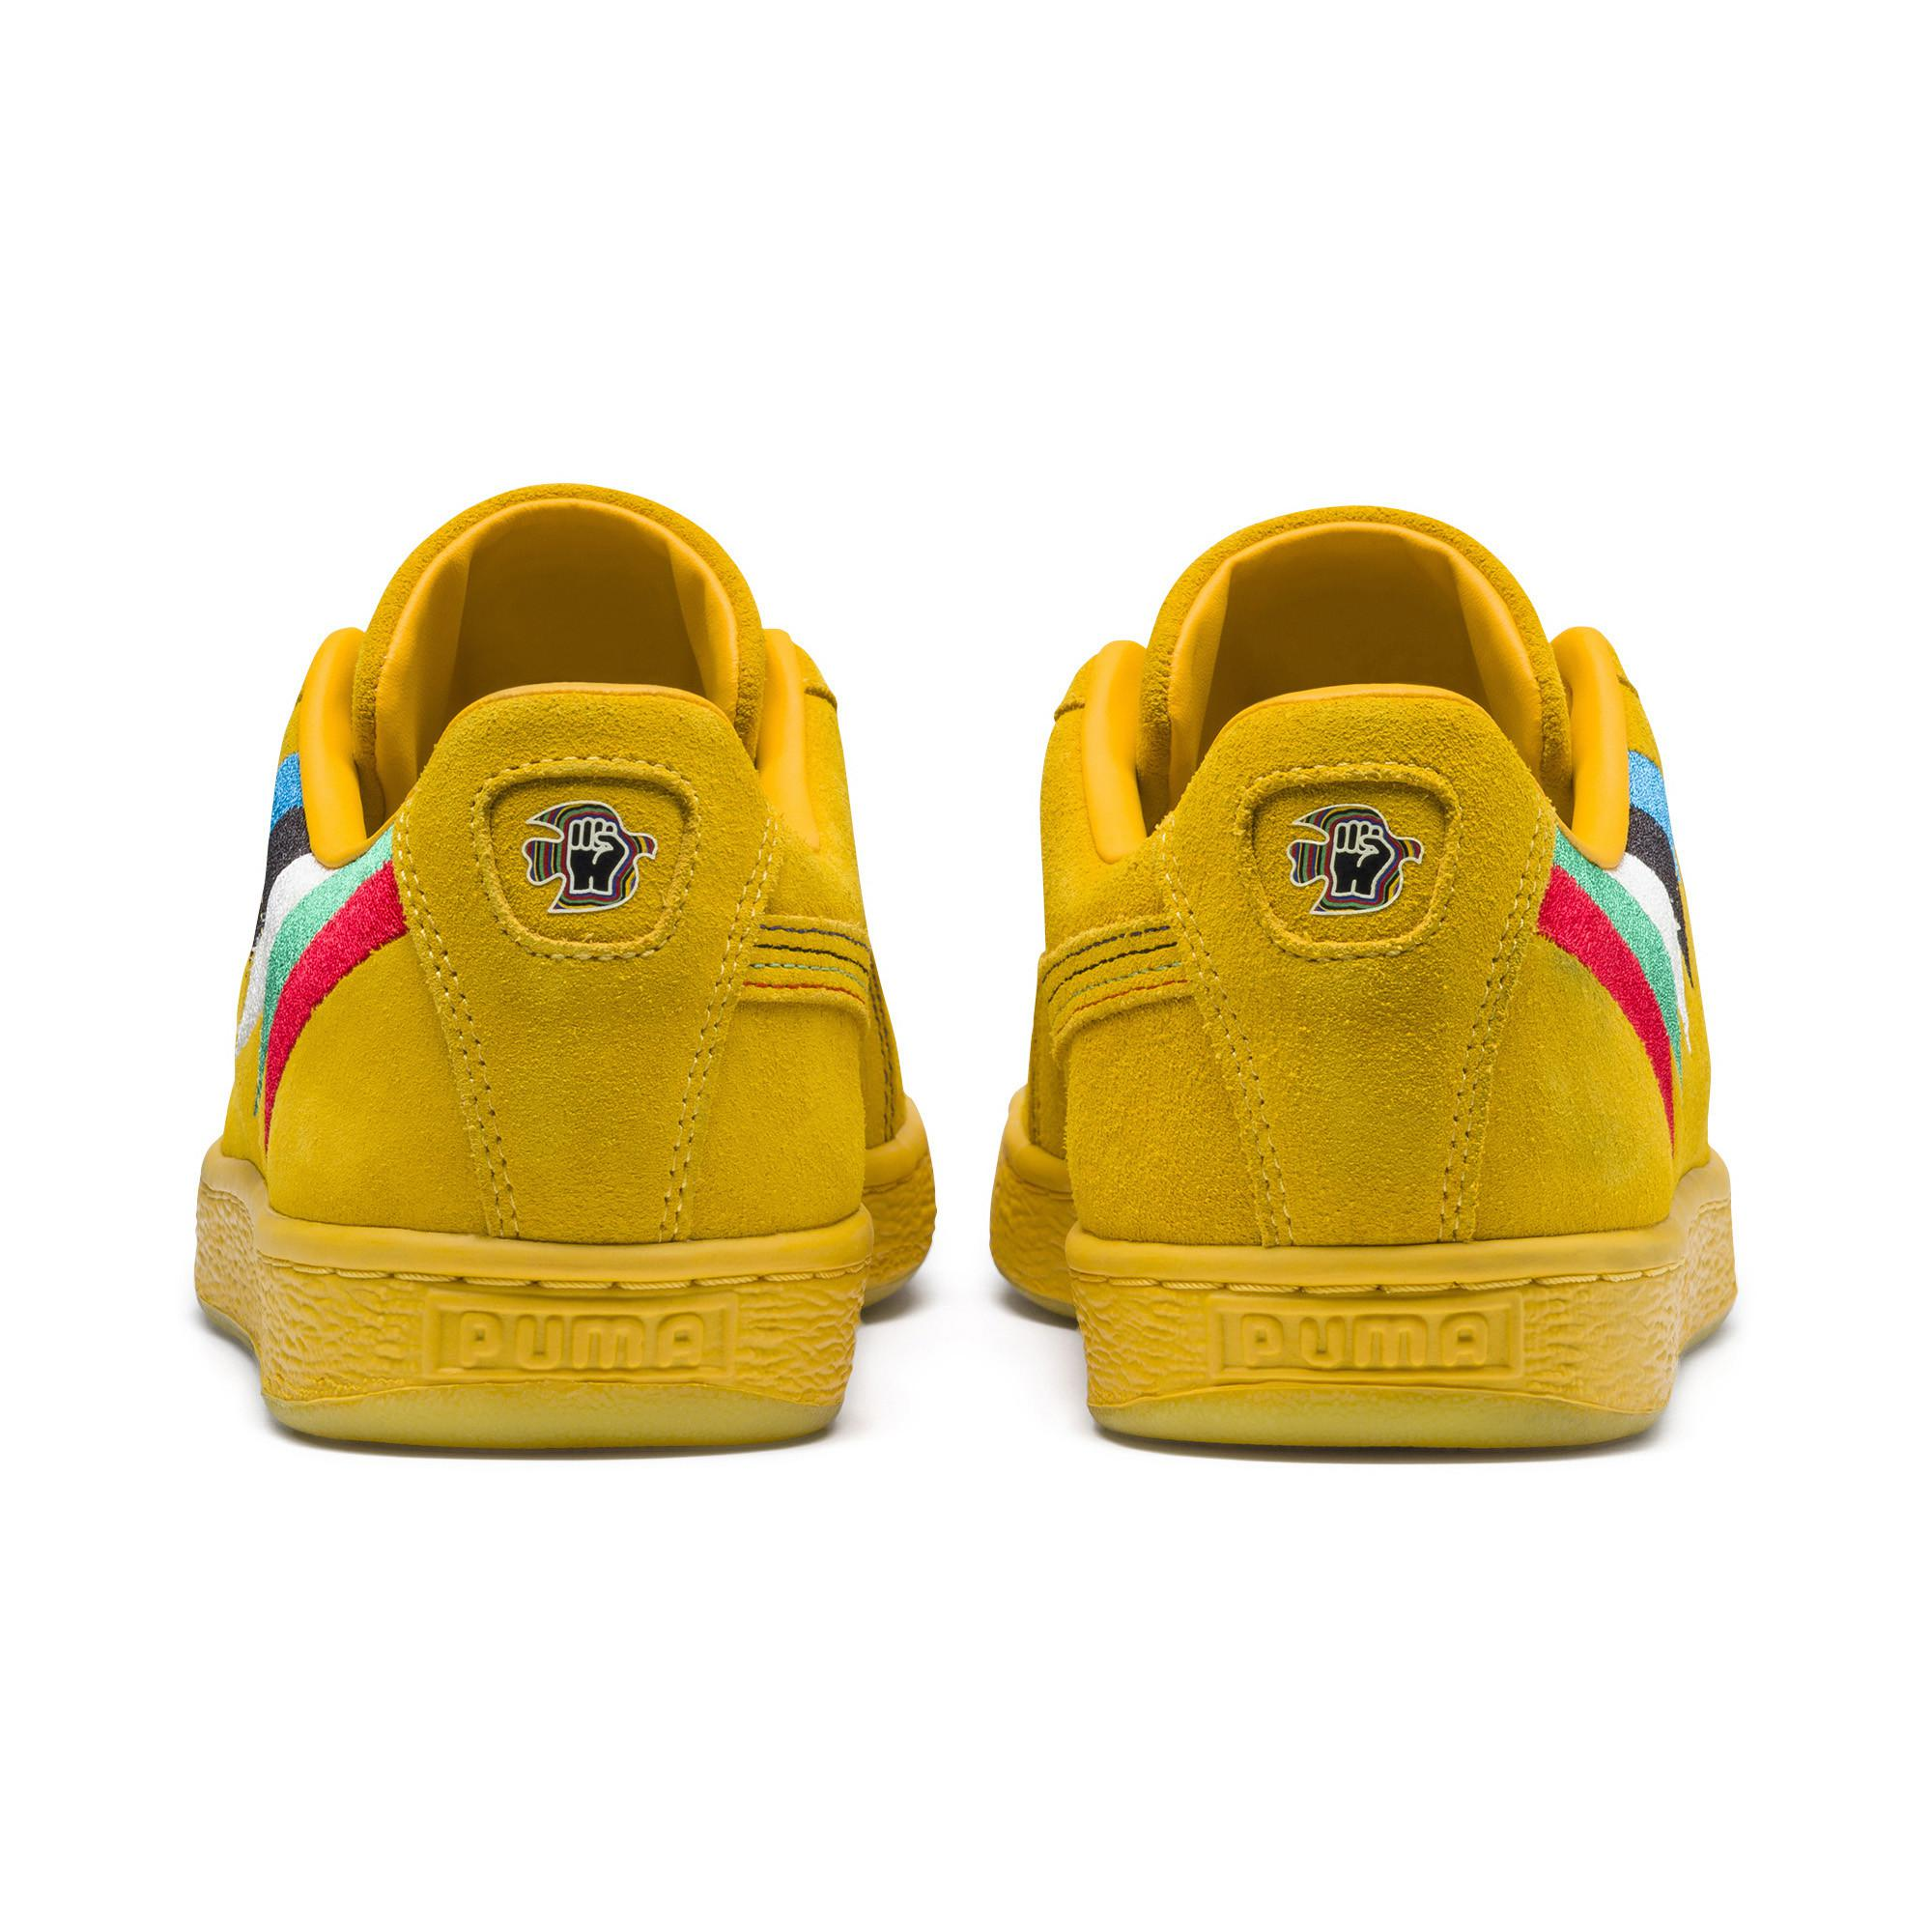 c45e98e26647 ... new product 9e28c 9c7e8 PUMA - Yellow X Power Through Peace Africa Suede  Sneakers - Lyst ...